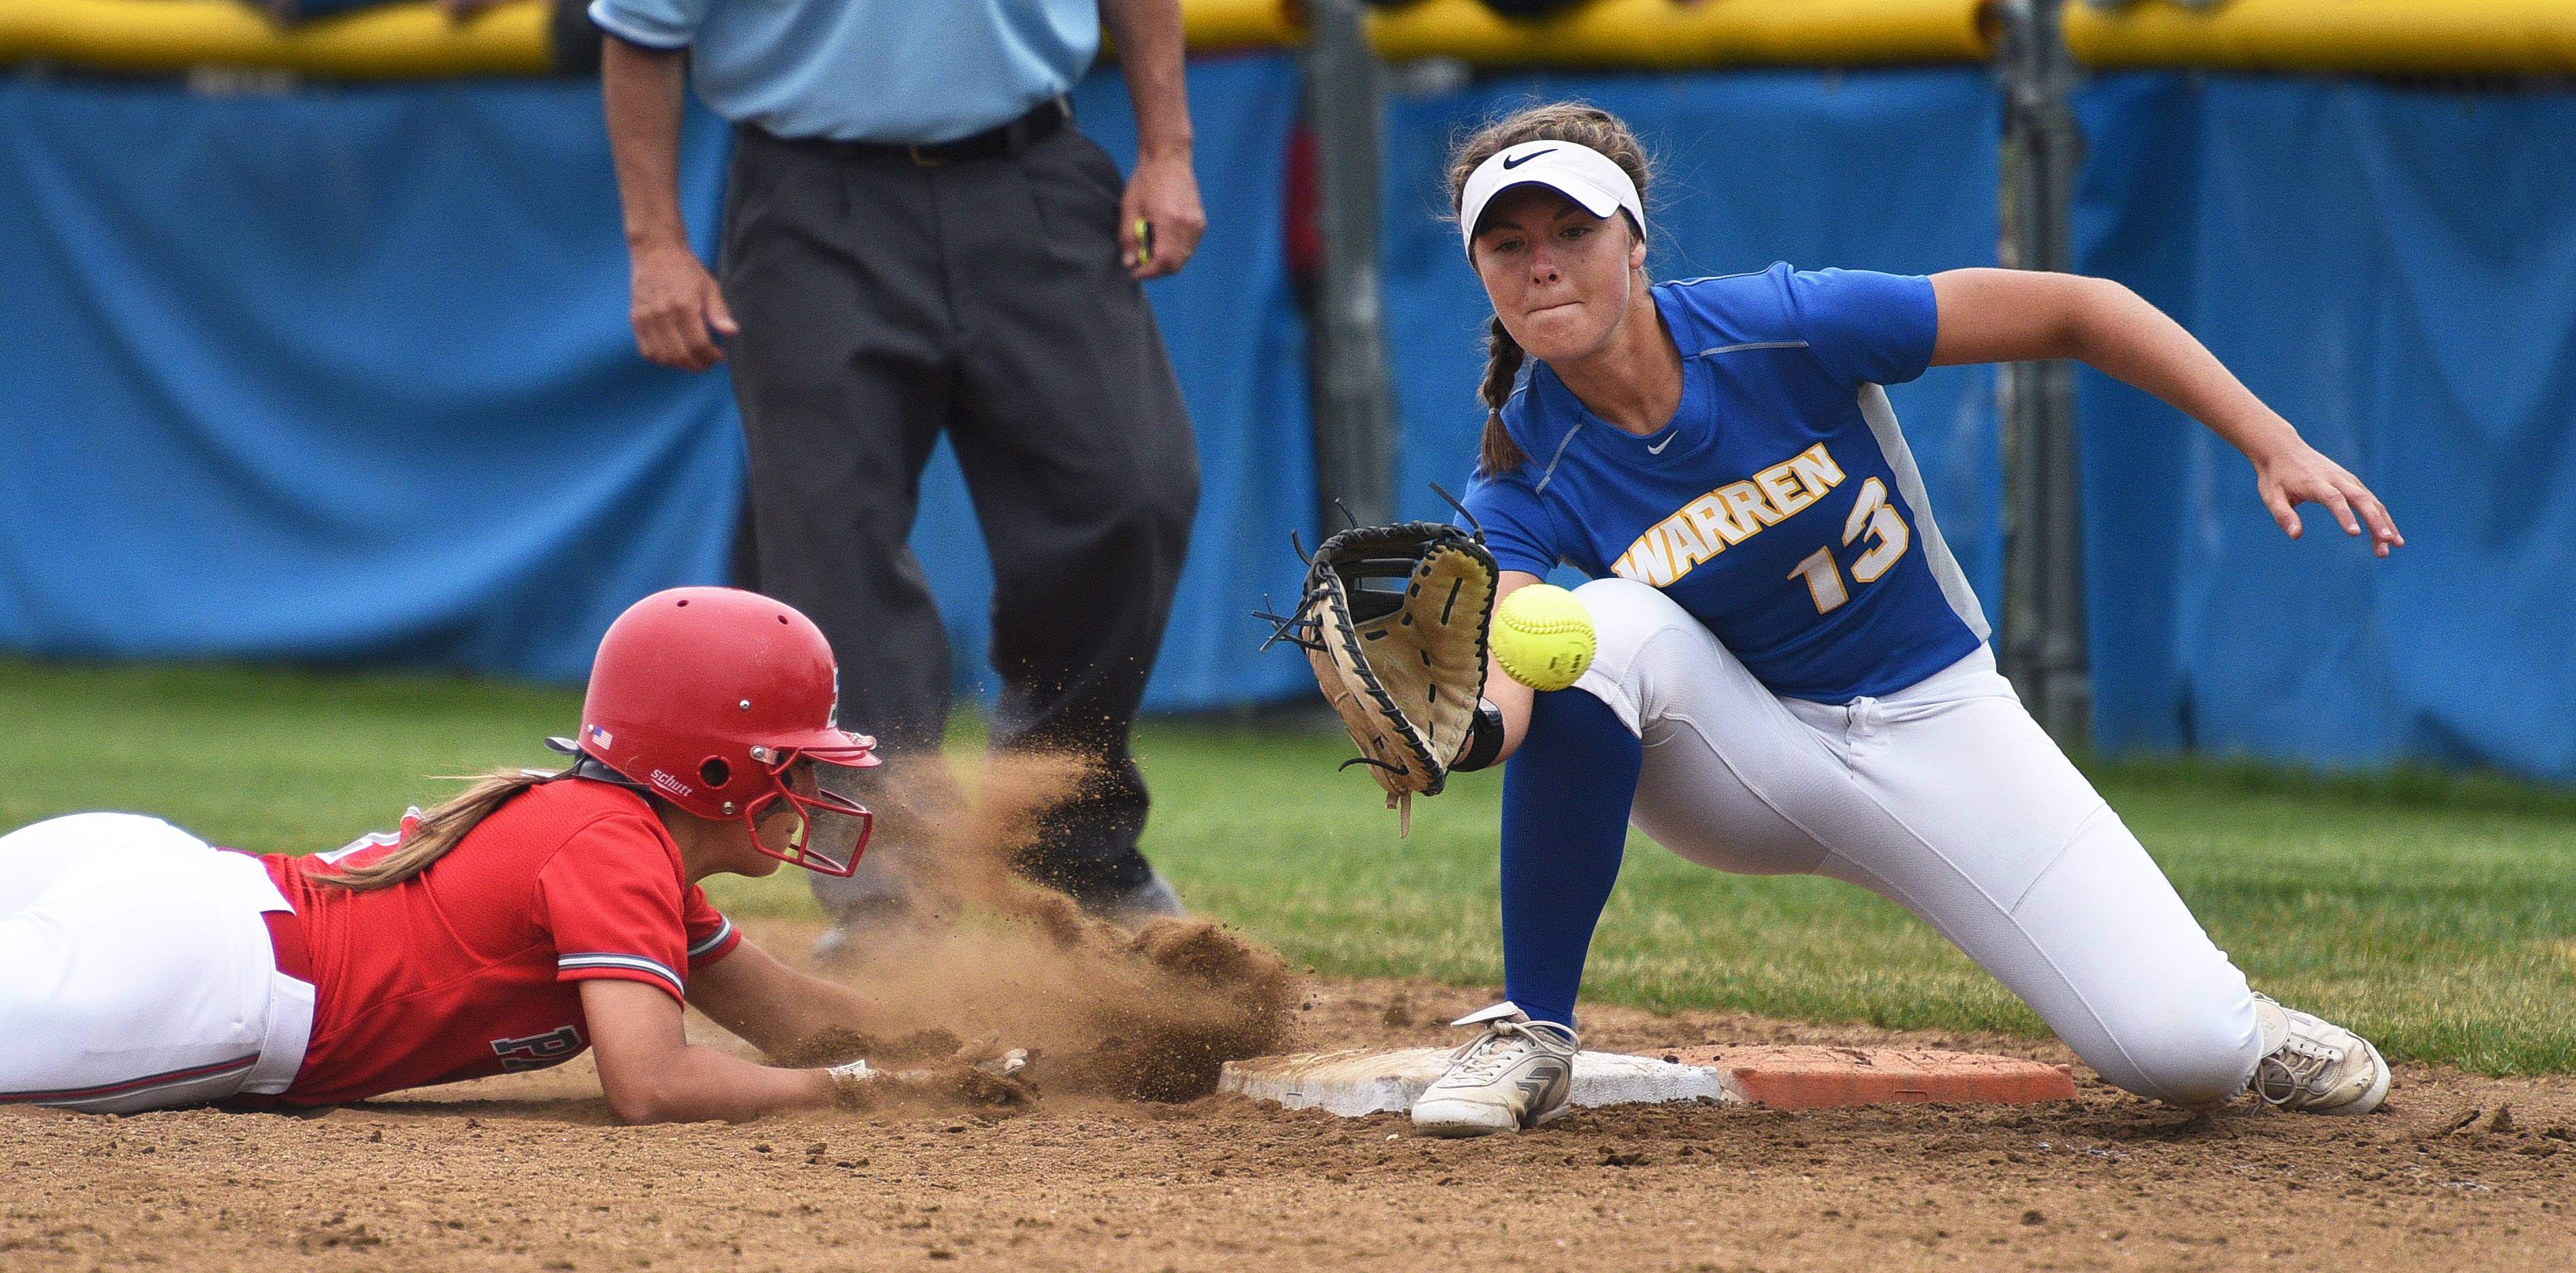 Palatine's Brittany Padden, left, slides safely back to first base as Warren's Kayla Nommensen waits for the pickoff throw during Saturday's Class 4A sectional championship softball game in Gurnee.